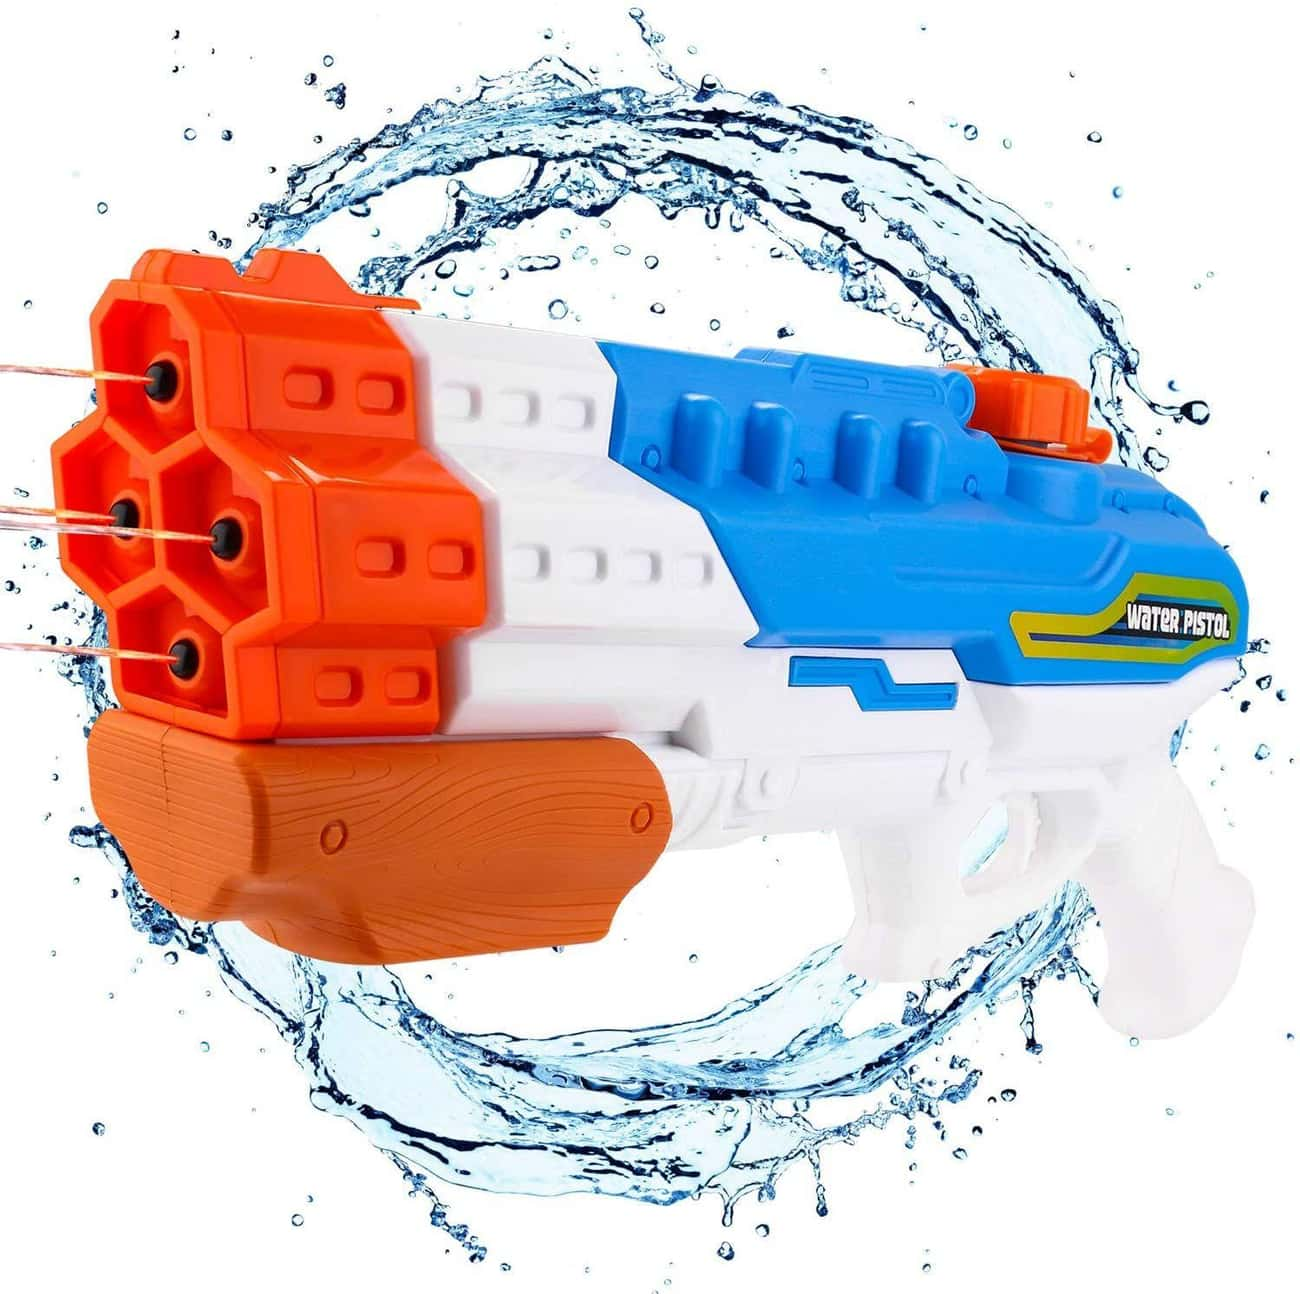 Super Powerful Water Gun Blast is listed (or ranked) 4 on the list 13 Backyard Water Toys That Are Sure To Keep The Kiddos Busy (For A Few Mins, At Least)